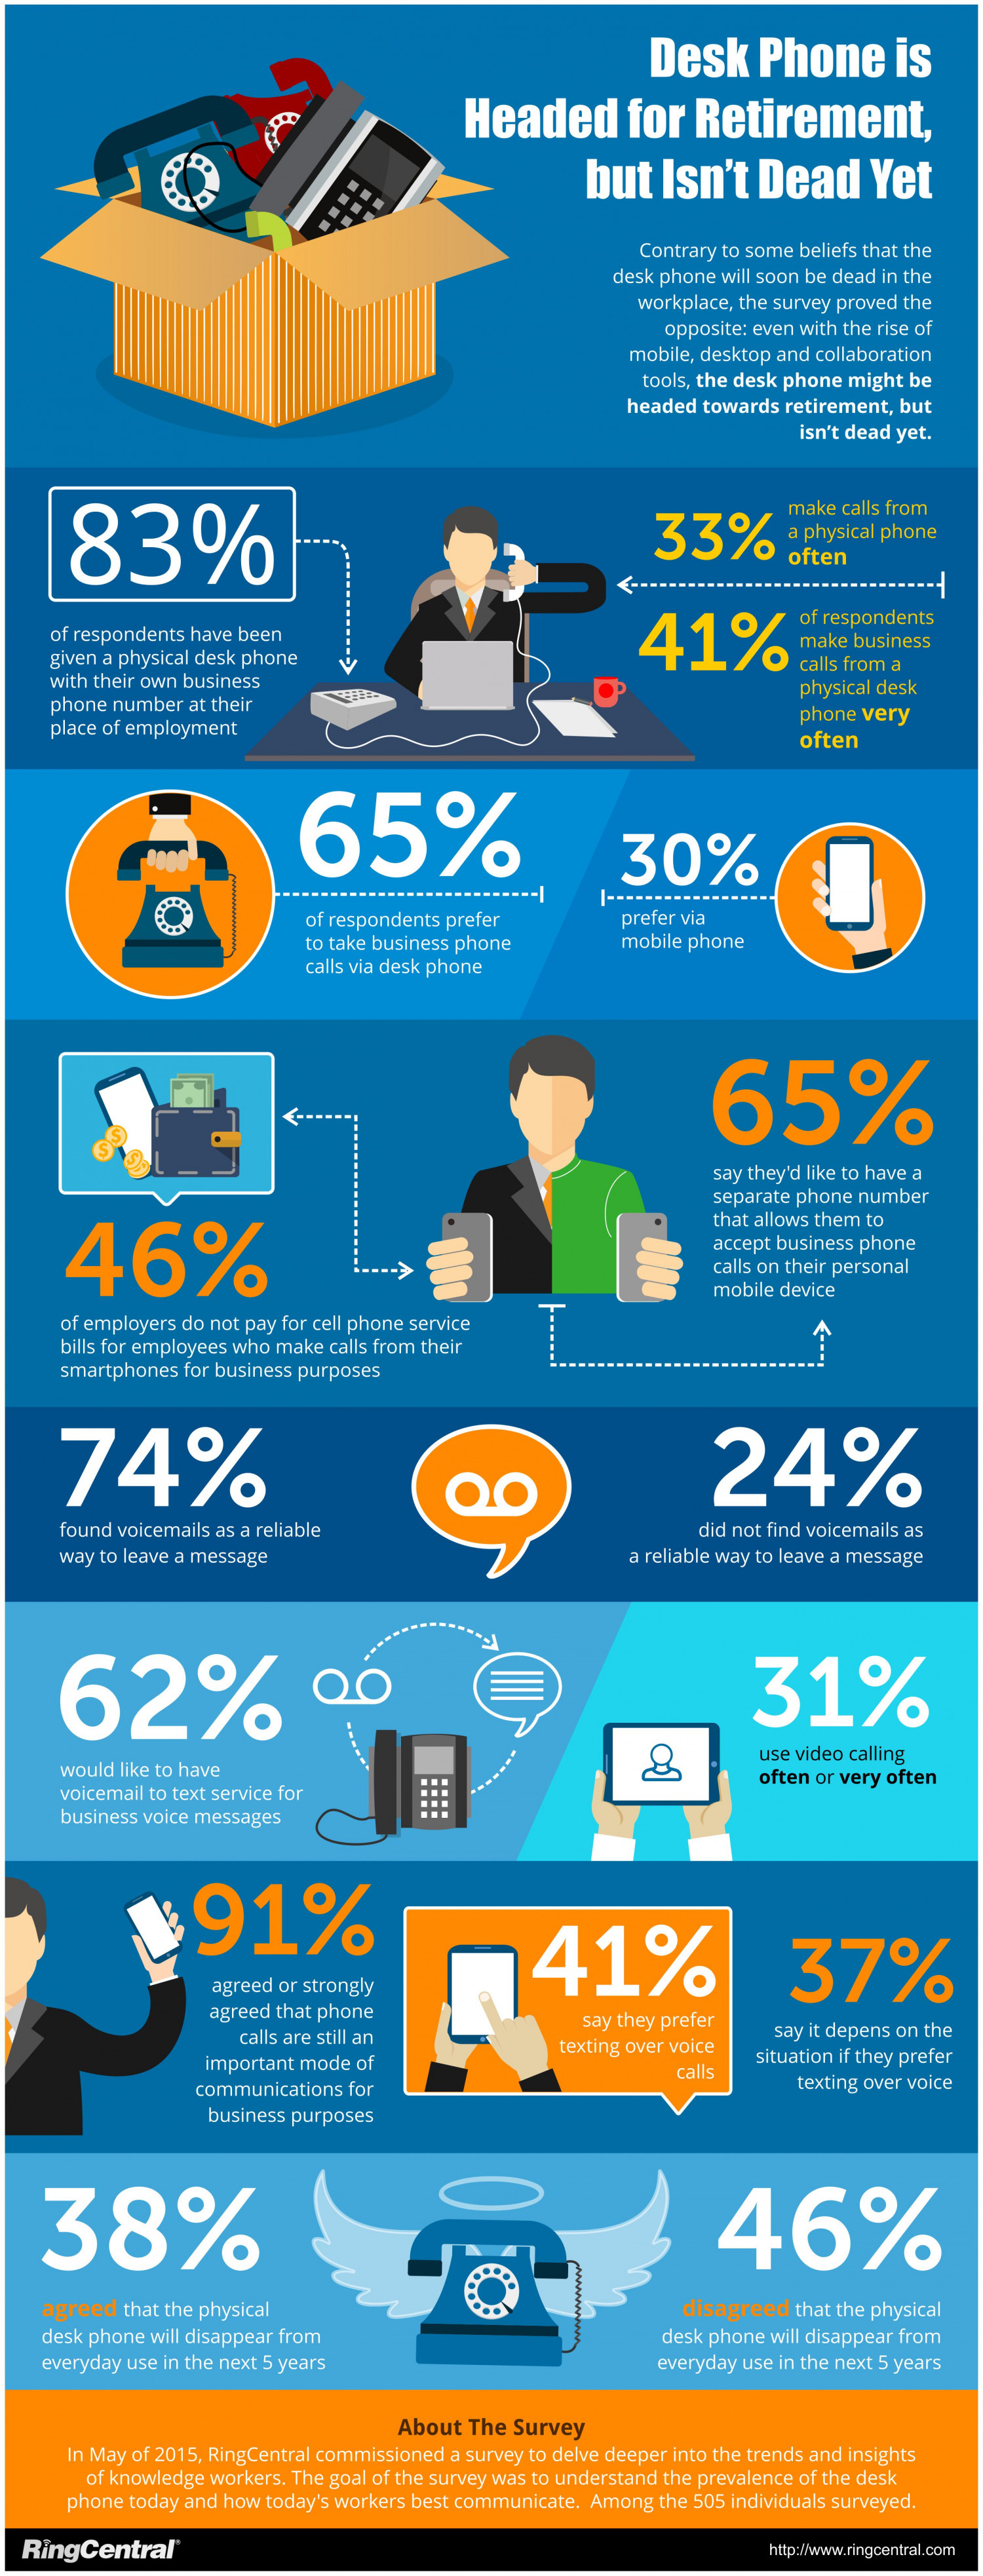 Infographic: Survey Shows Desk Phone is Headed for Retirement, but Isn't Dead Yet Infographic